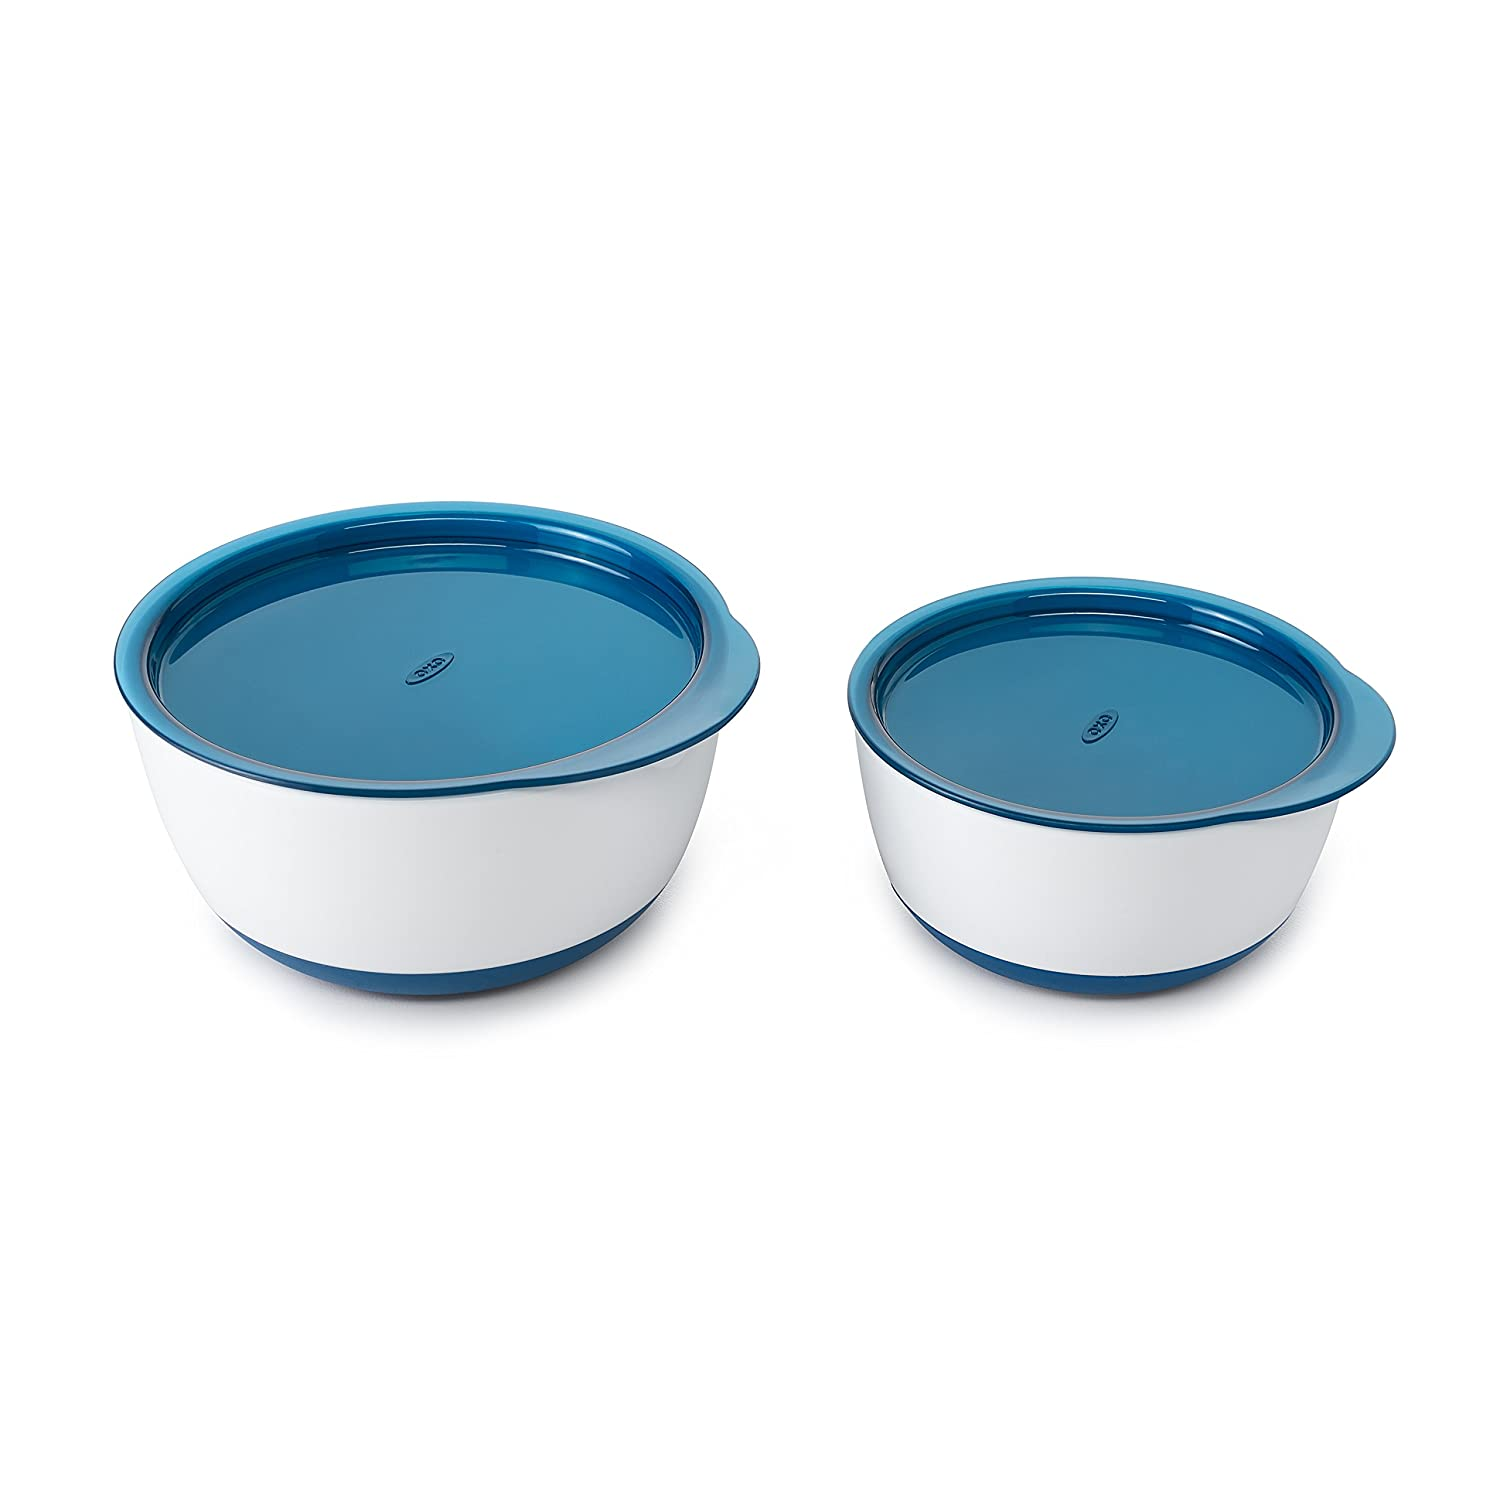 OXO Tot Small & Large Bowl Set with Snap On Lids - Navy